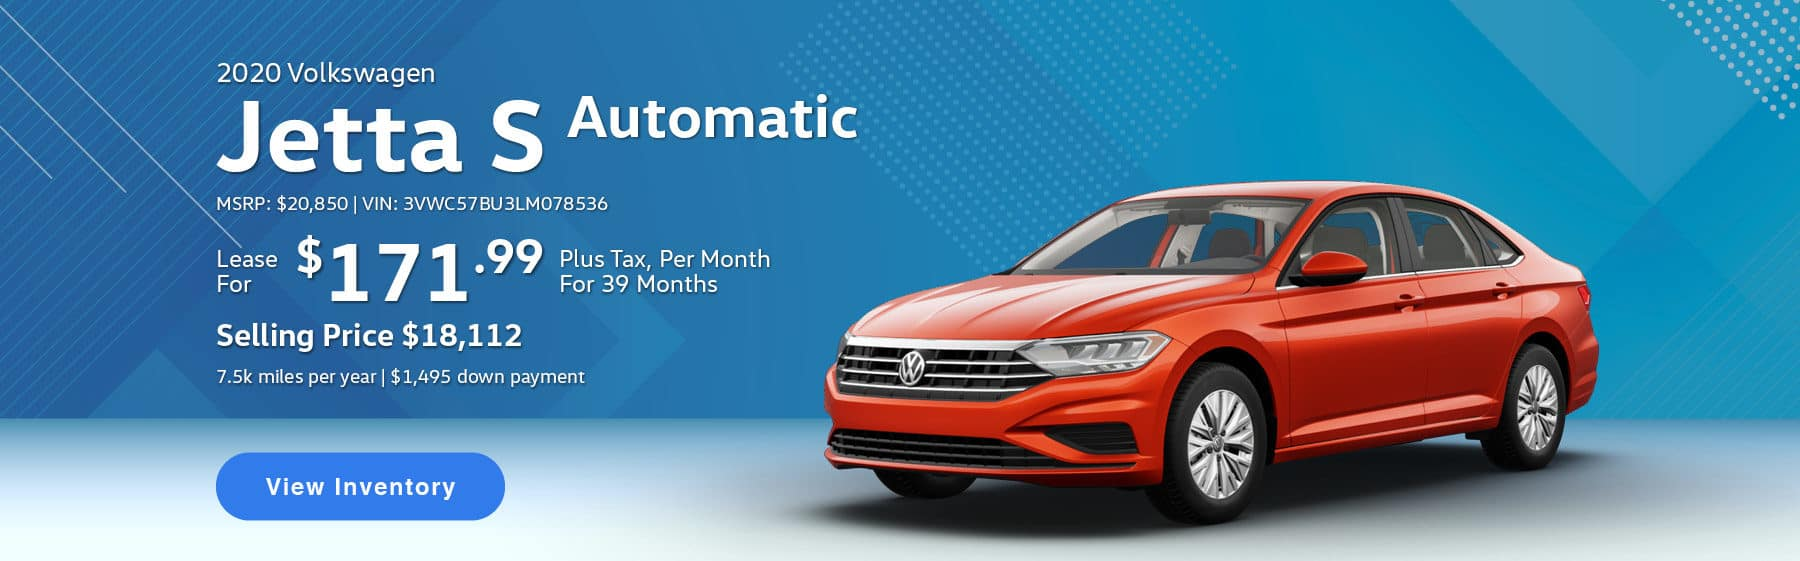 Lease the 2020 Jetta S Automatic for $171.99 per month, plus tax for 39 months.